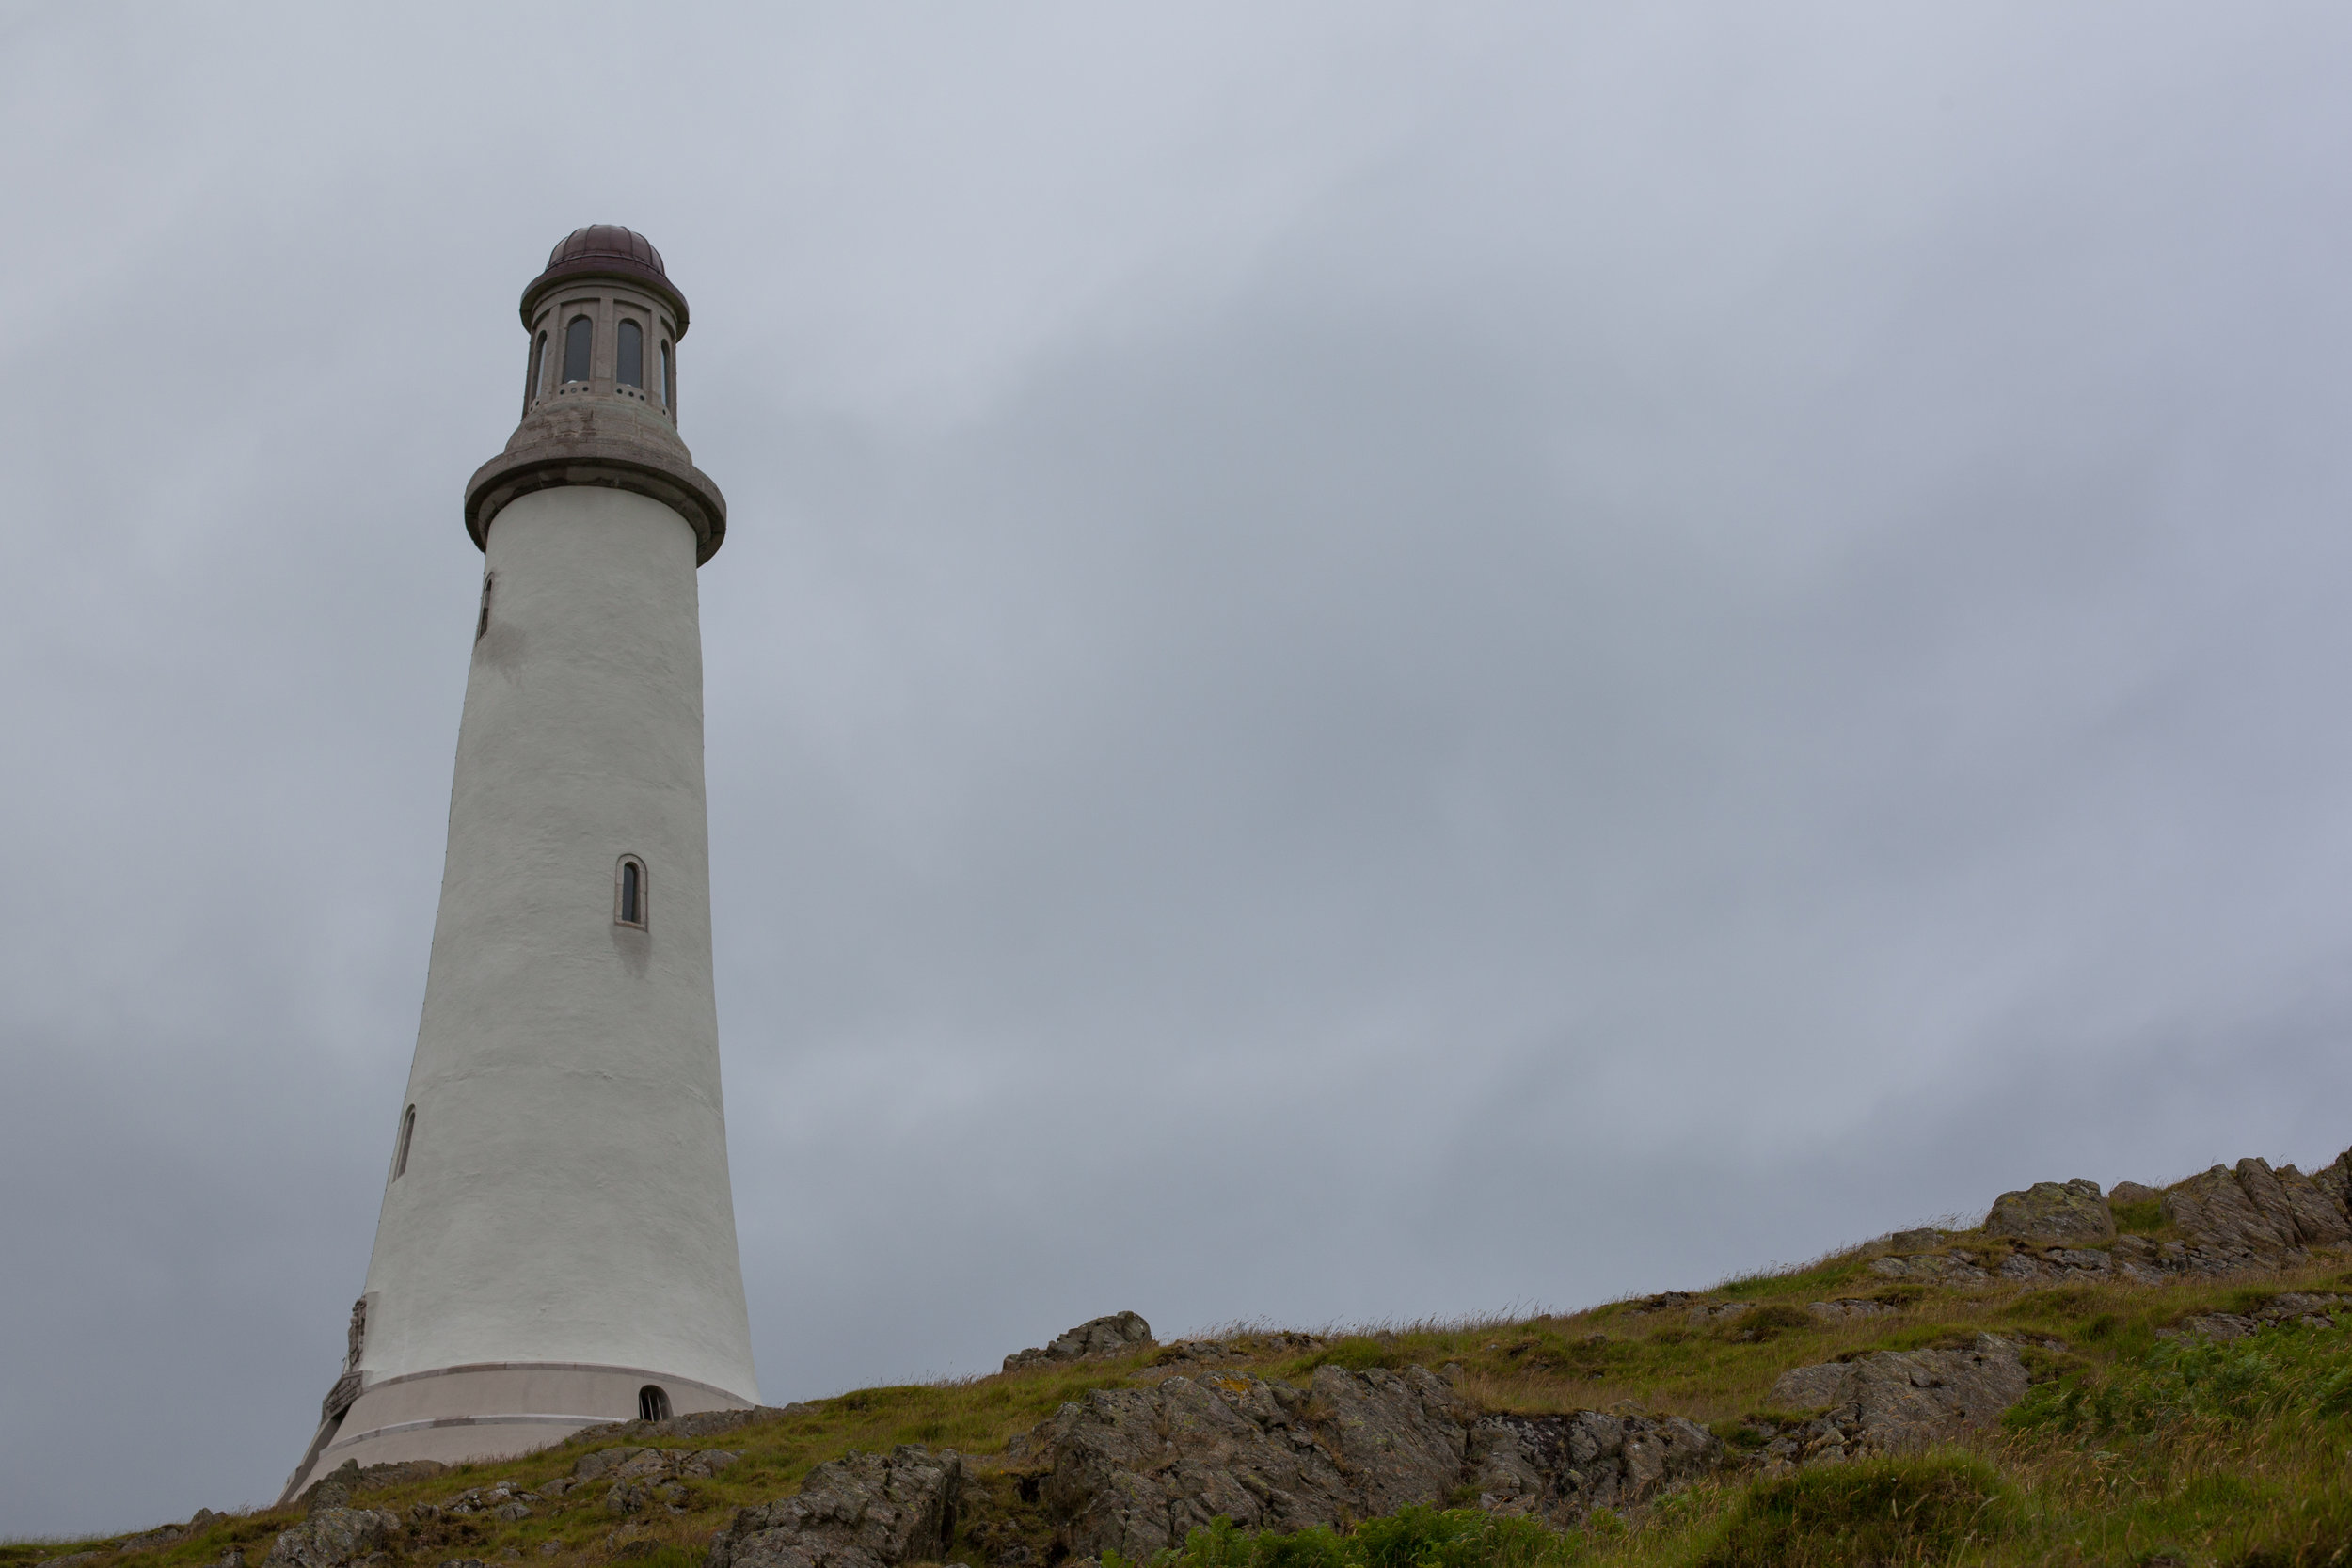 A large lighthouse in Great Britain.